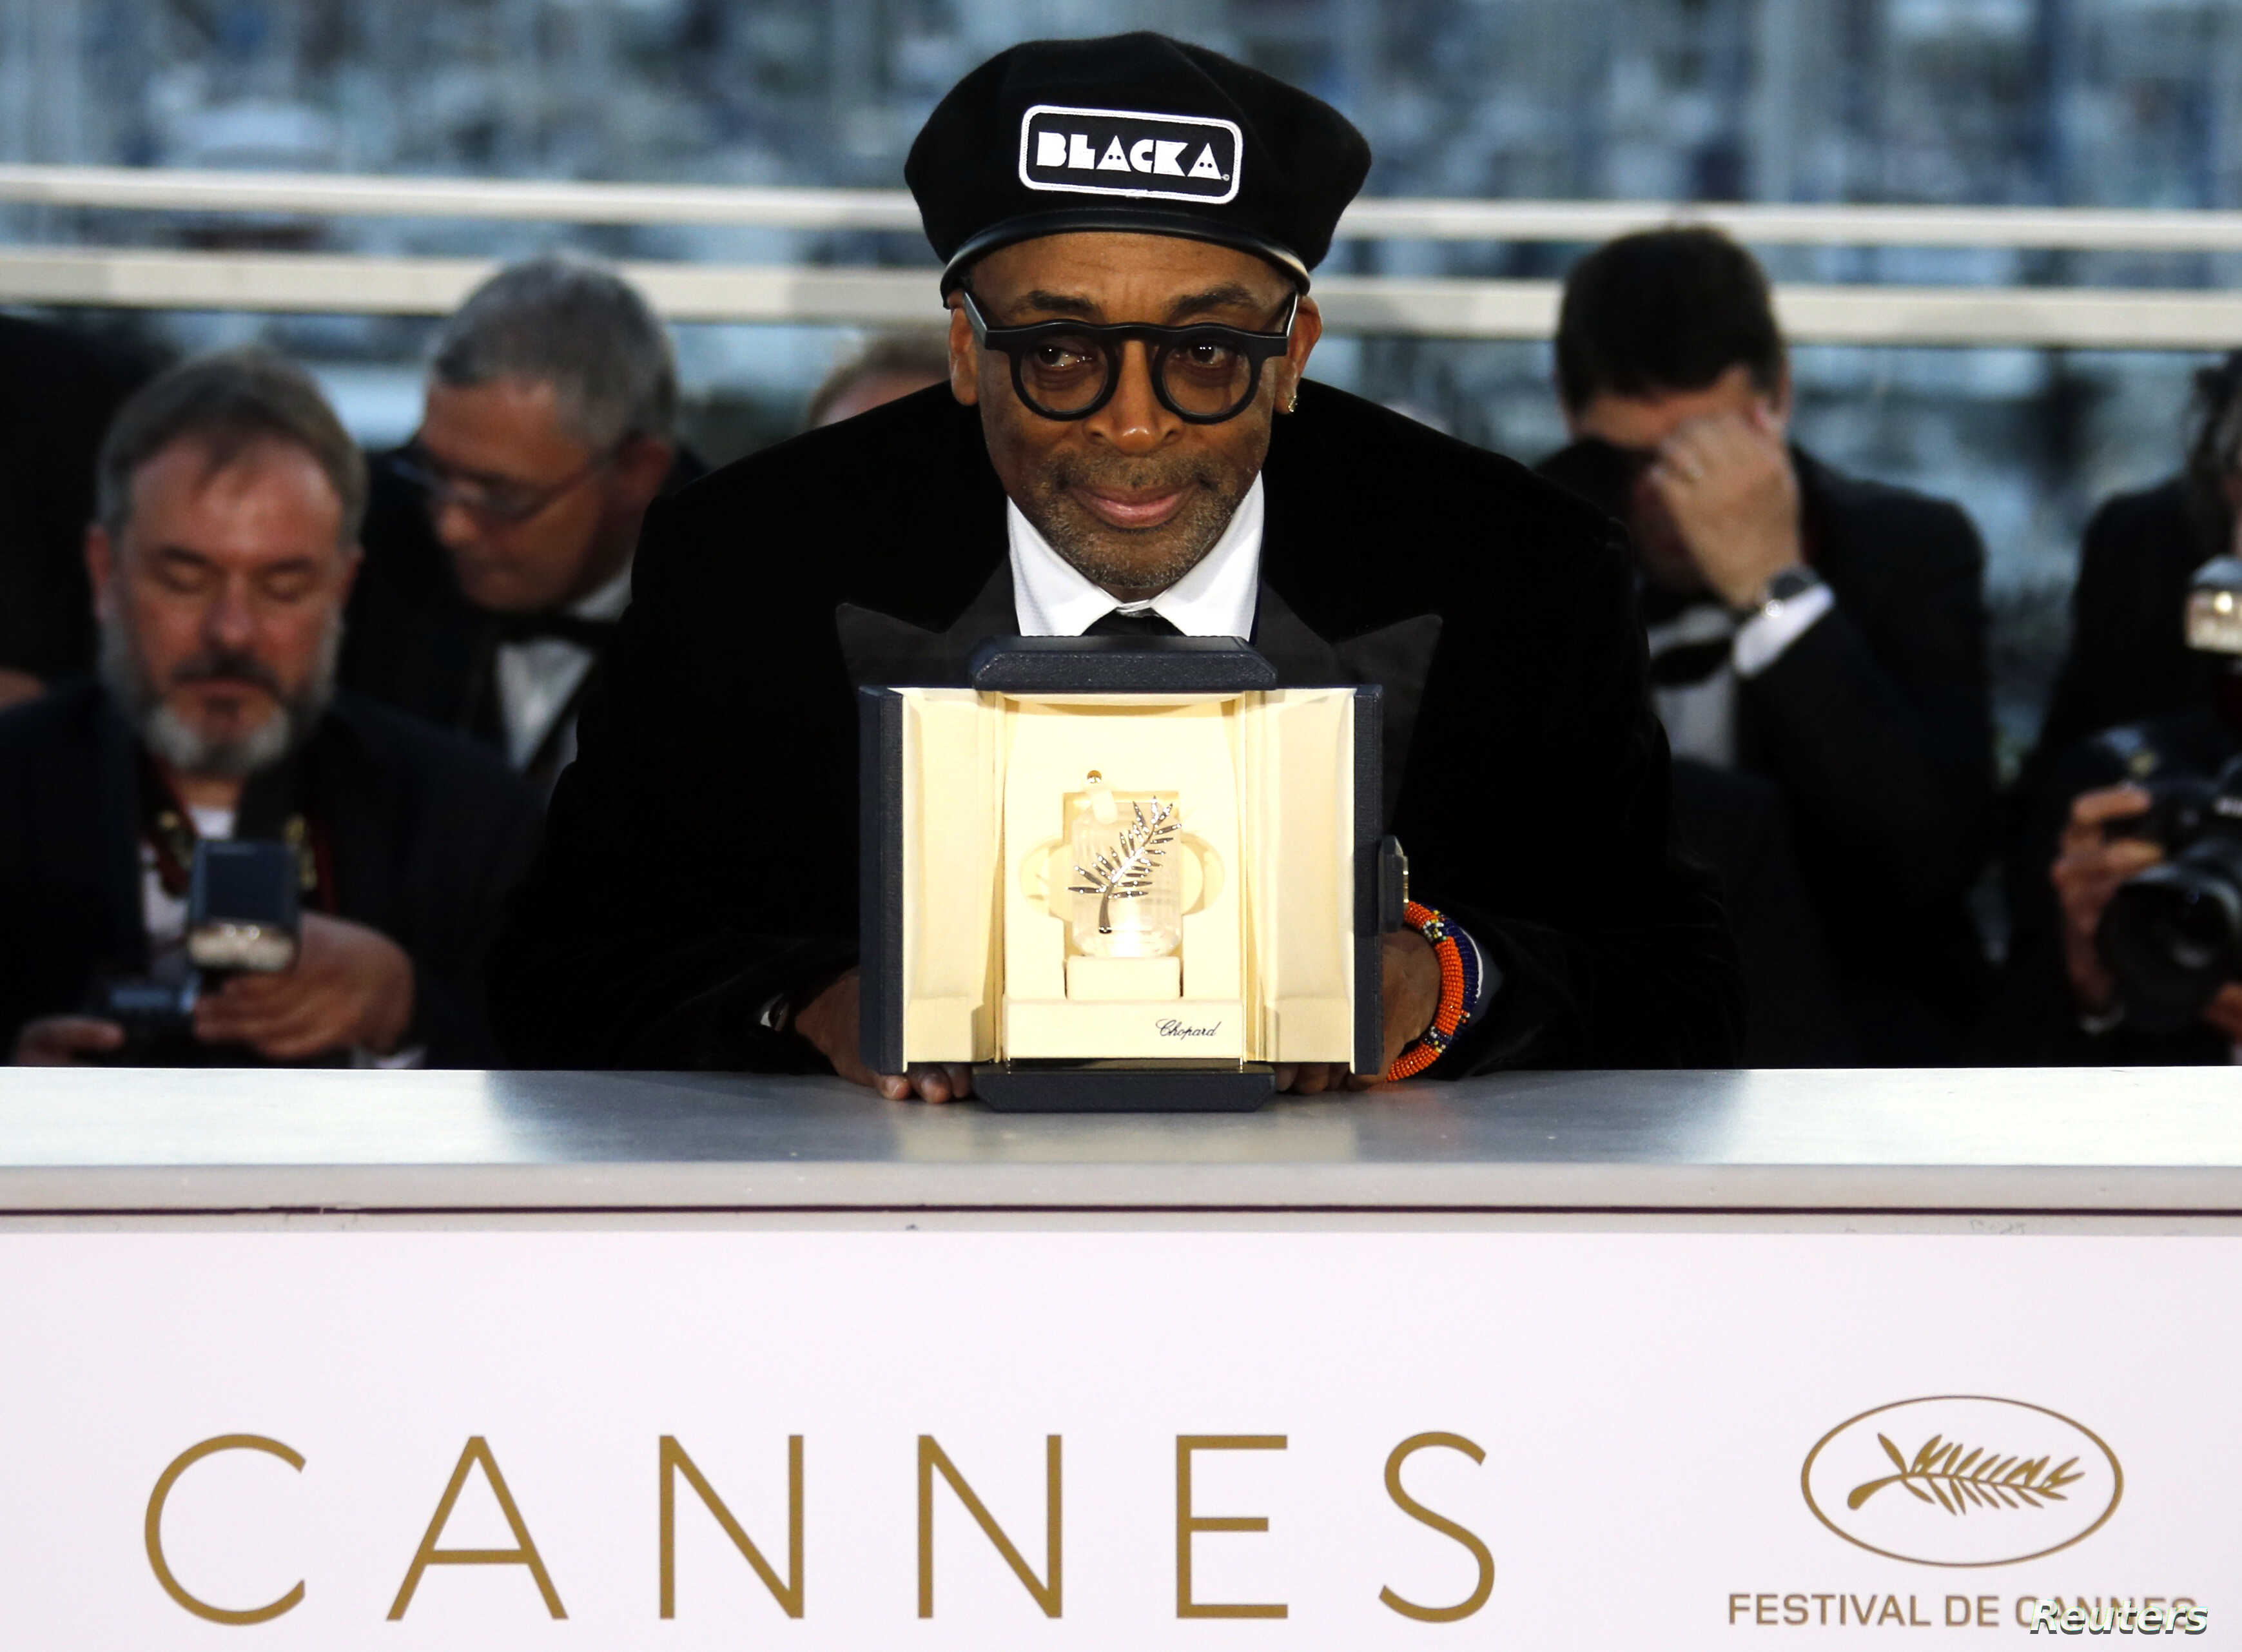 """Director Spike Lee, Grand Prix award winner for his film """"BlacKkKlansman,"""" poses after the closing ceremony of the 71st Cannes Film Festival, Cannes, France, May 19, 2018."""